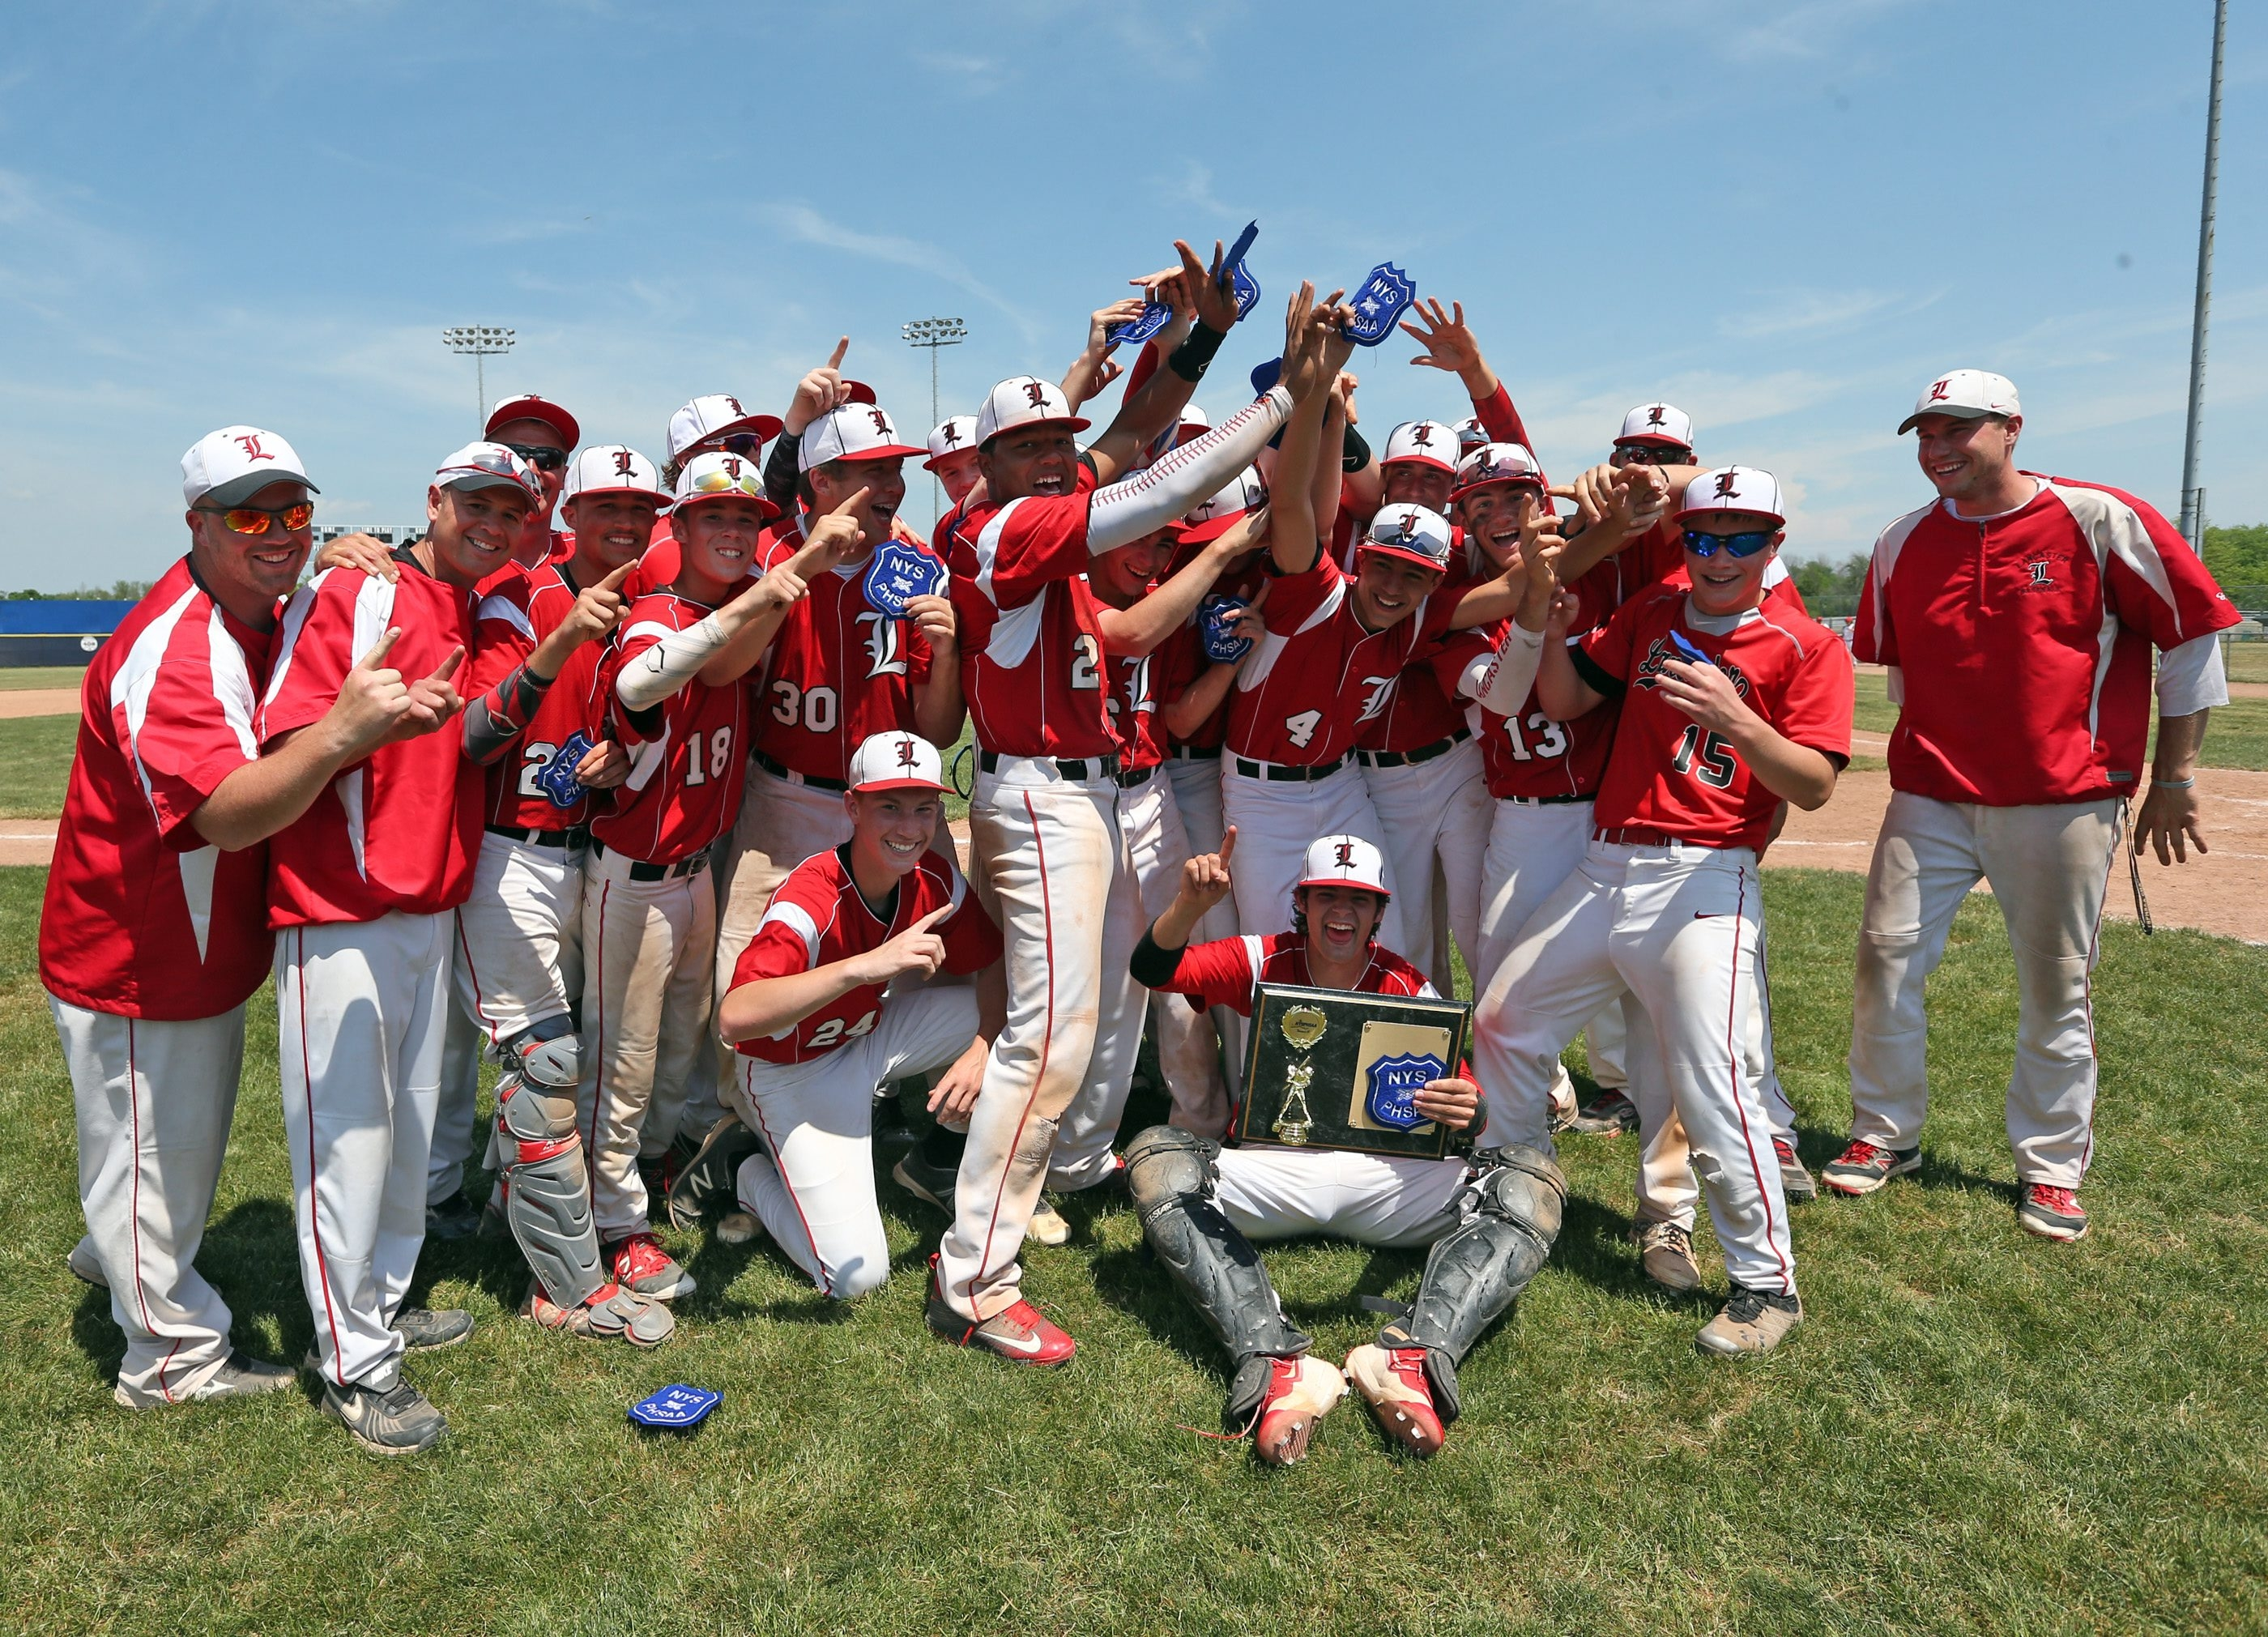 Lancaster celebrates the Section VI Class AA championship after beating Niagara Falls on Saturday at Sal Maglie Stadium.